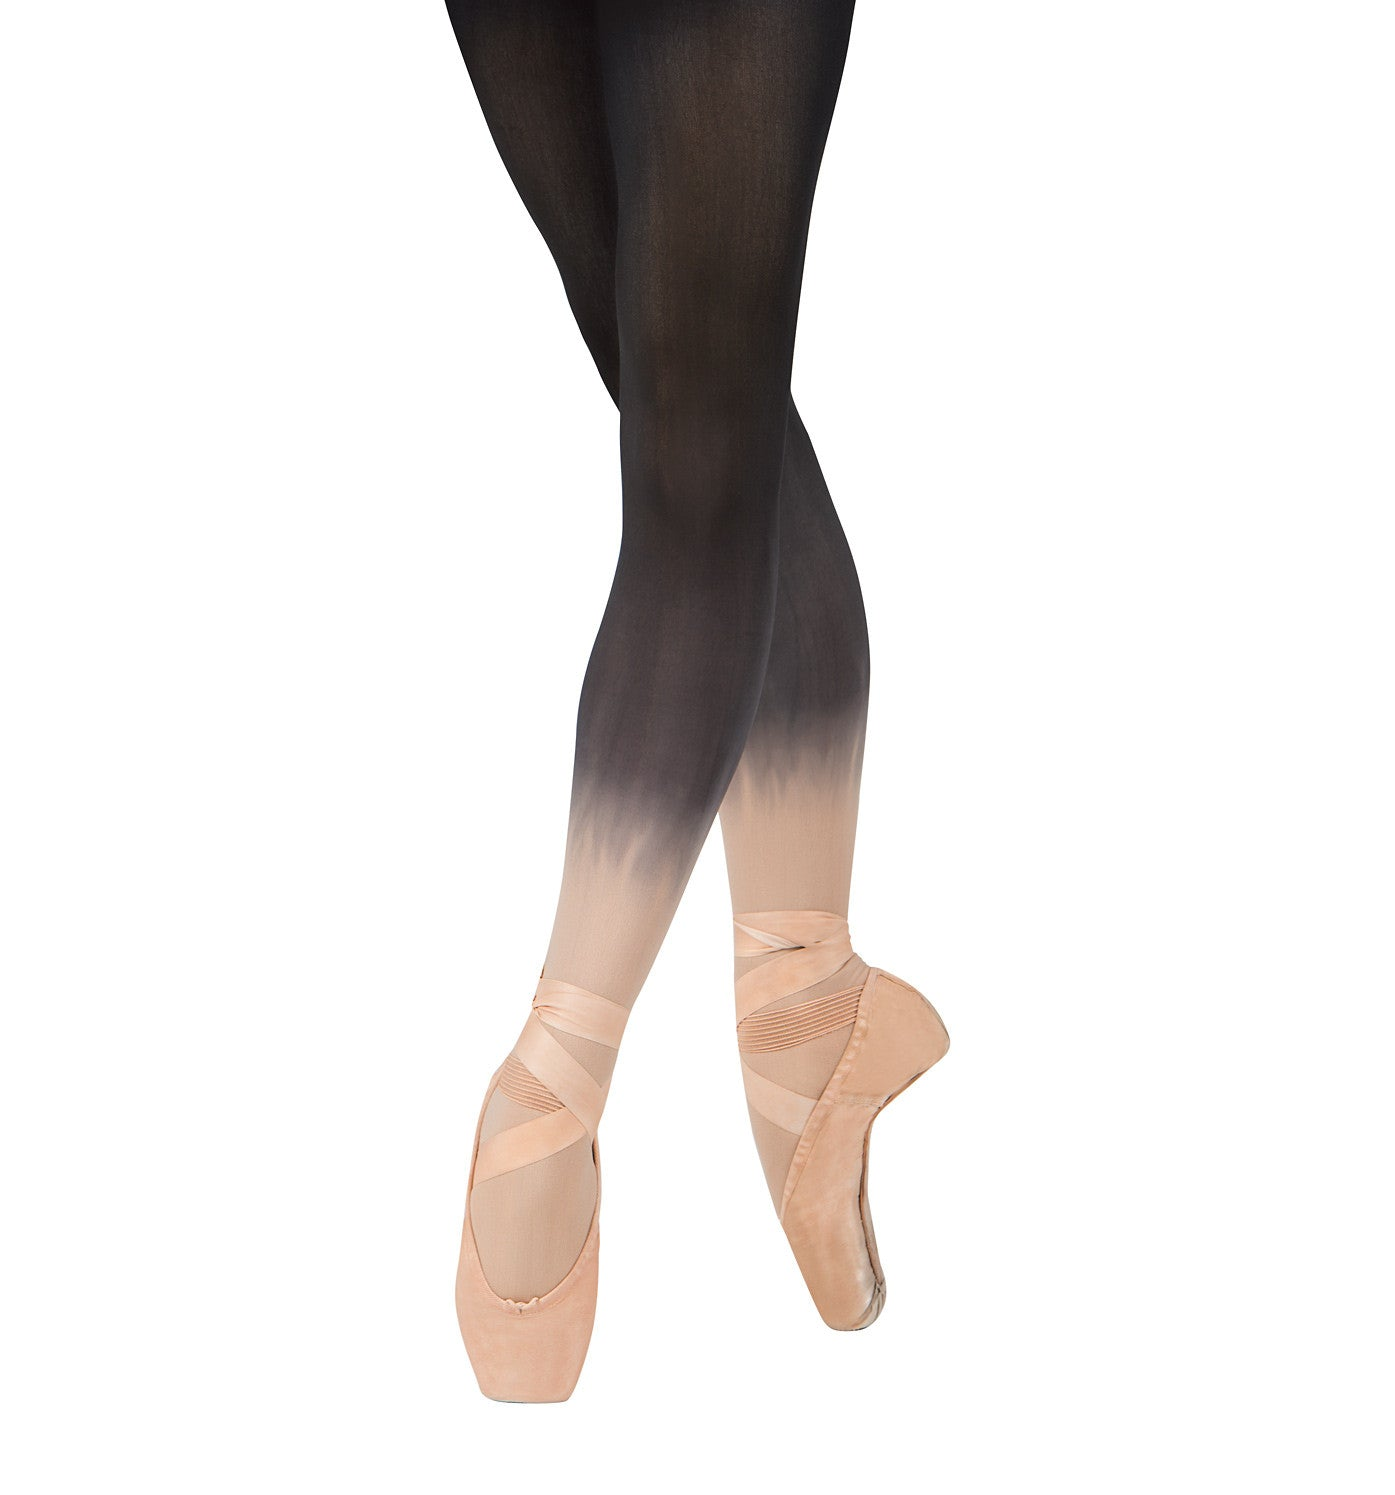 Discount Dance Supply Adult Ombre Opaque Footed Tights for Women